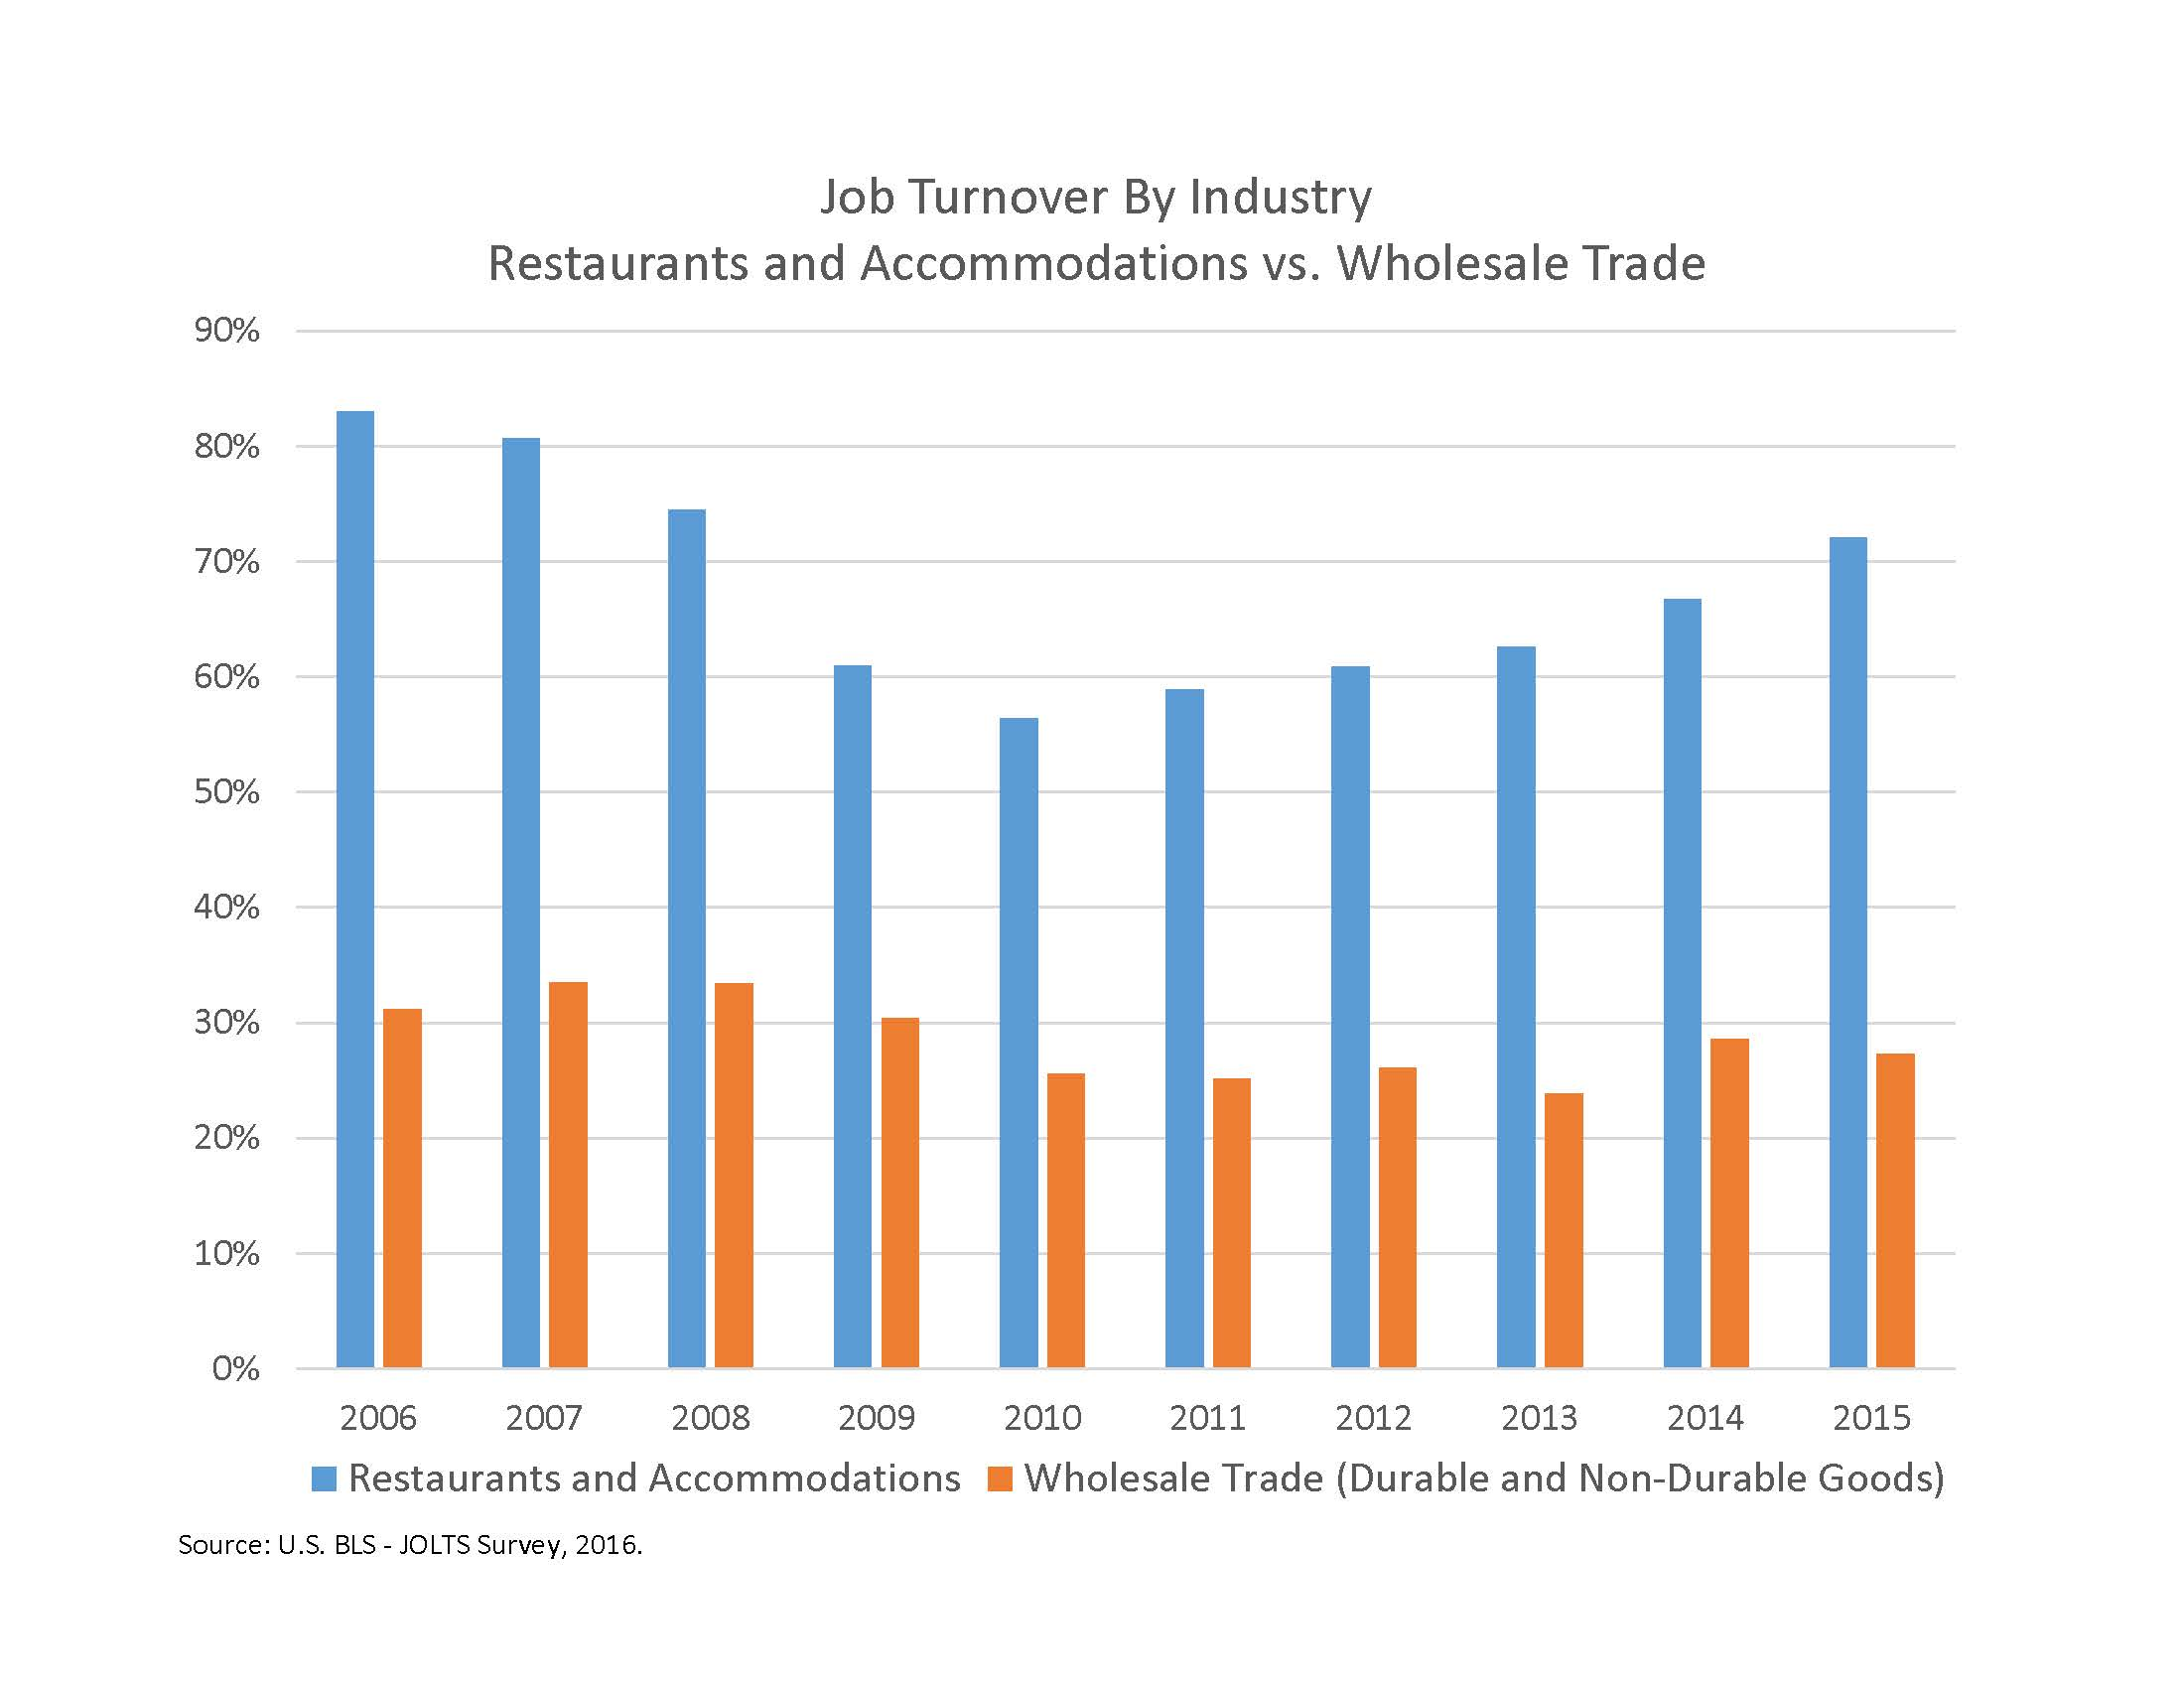 why a job is not just a job expectations for employee turnover in job turnover by industry restaurants and accommodations vs whole trade